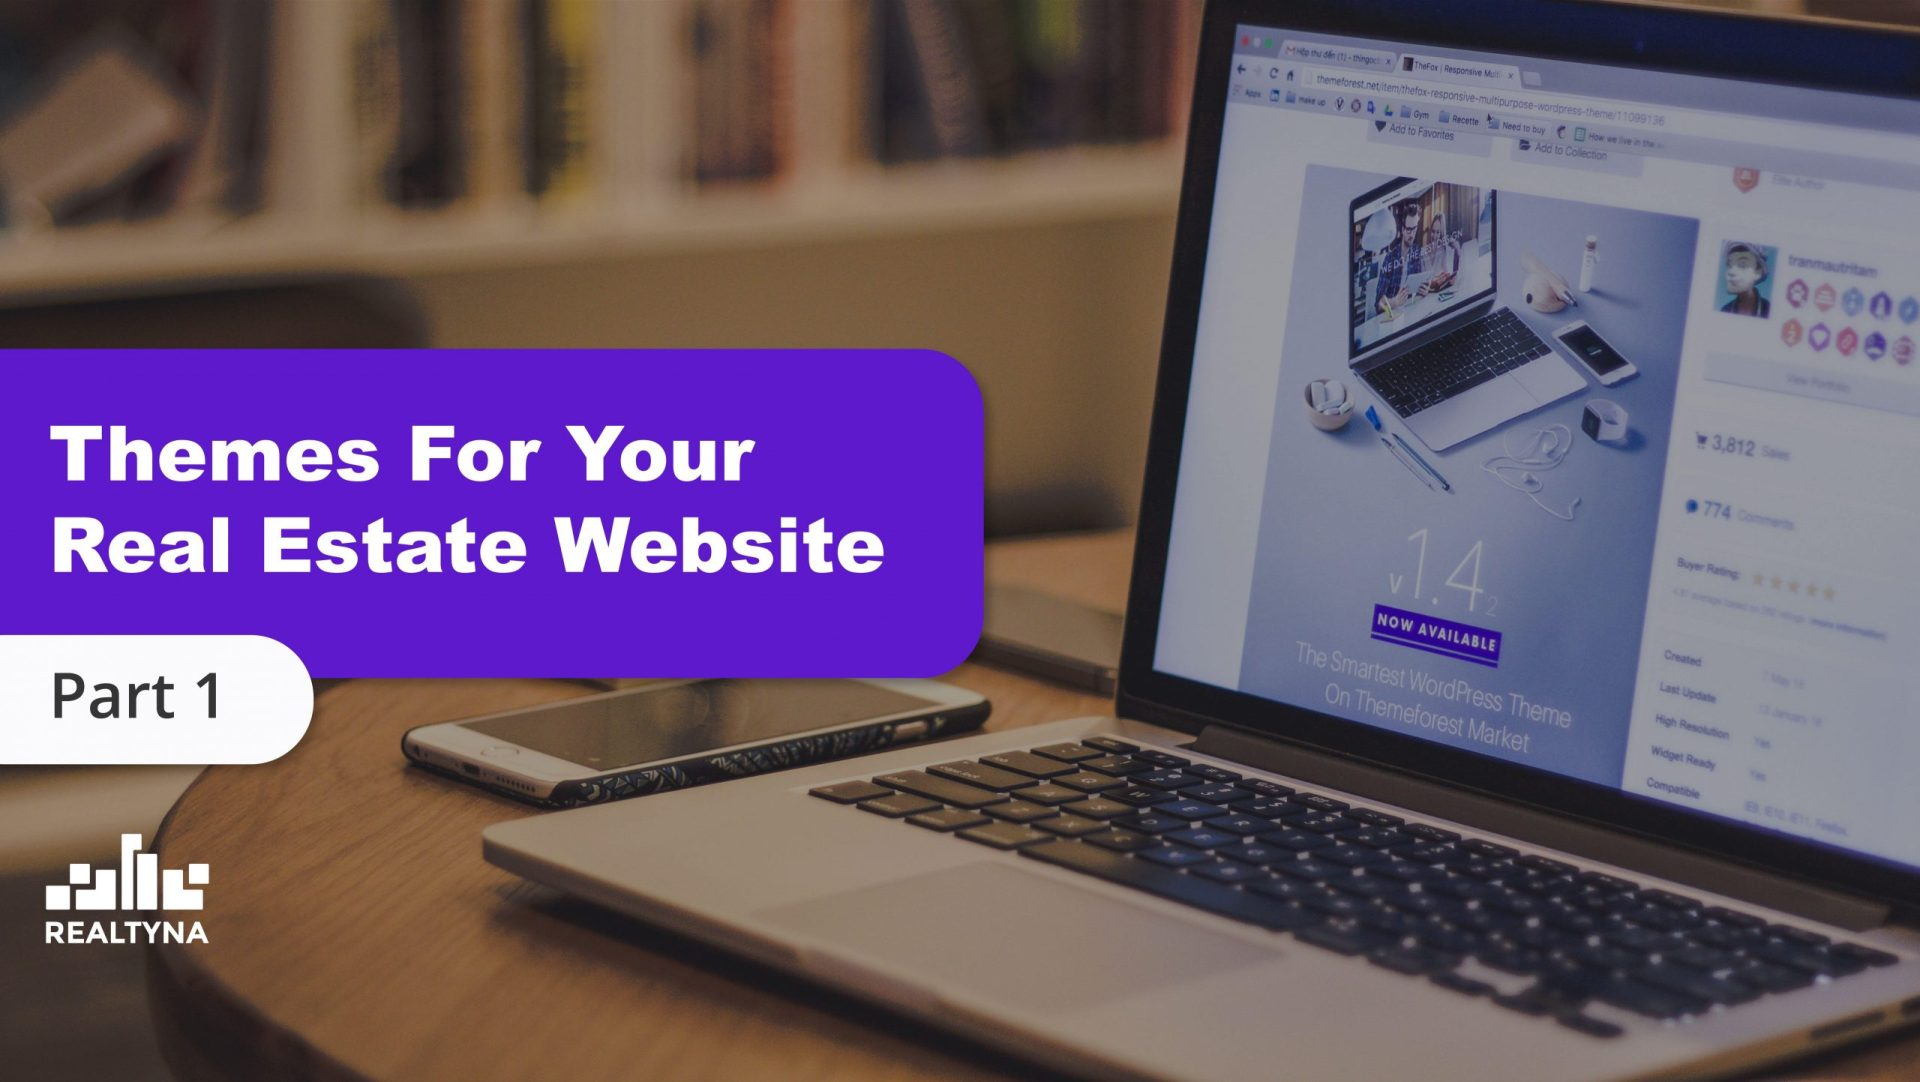 Themes For Your Real Estate Website (Part 1)